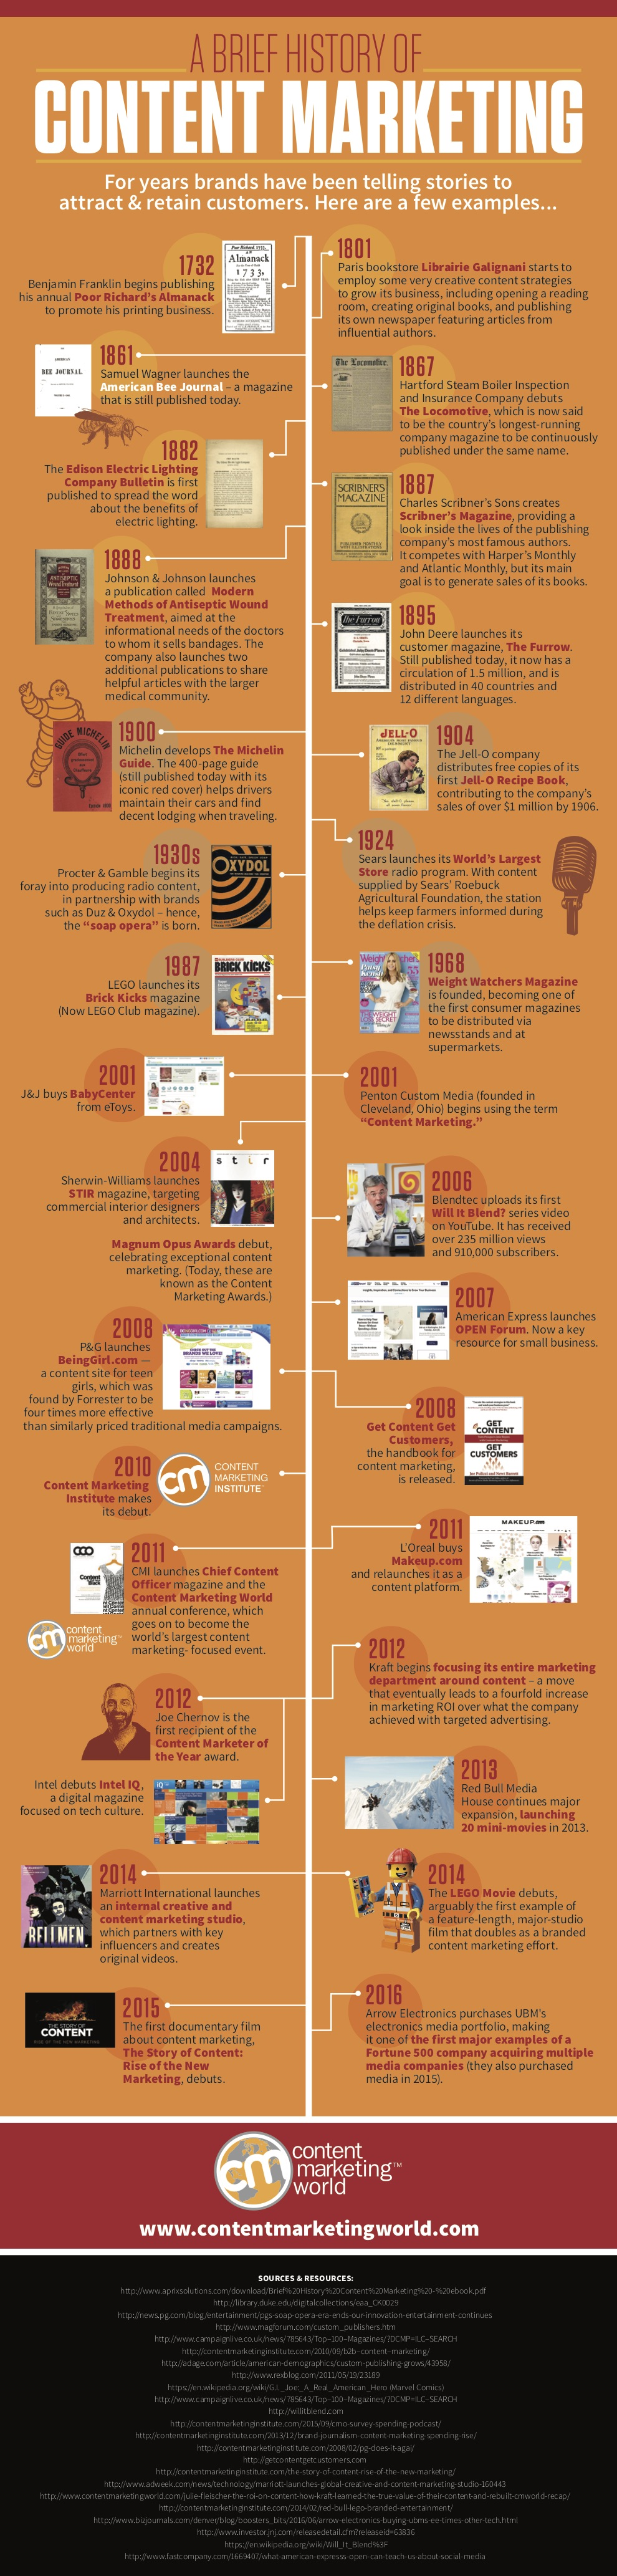 Infographic History of Content Marketing